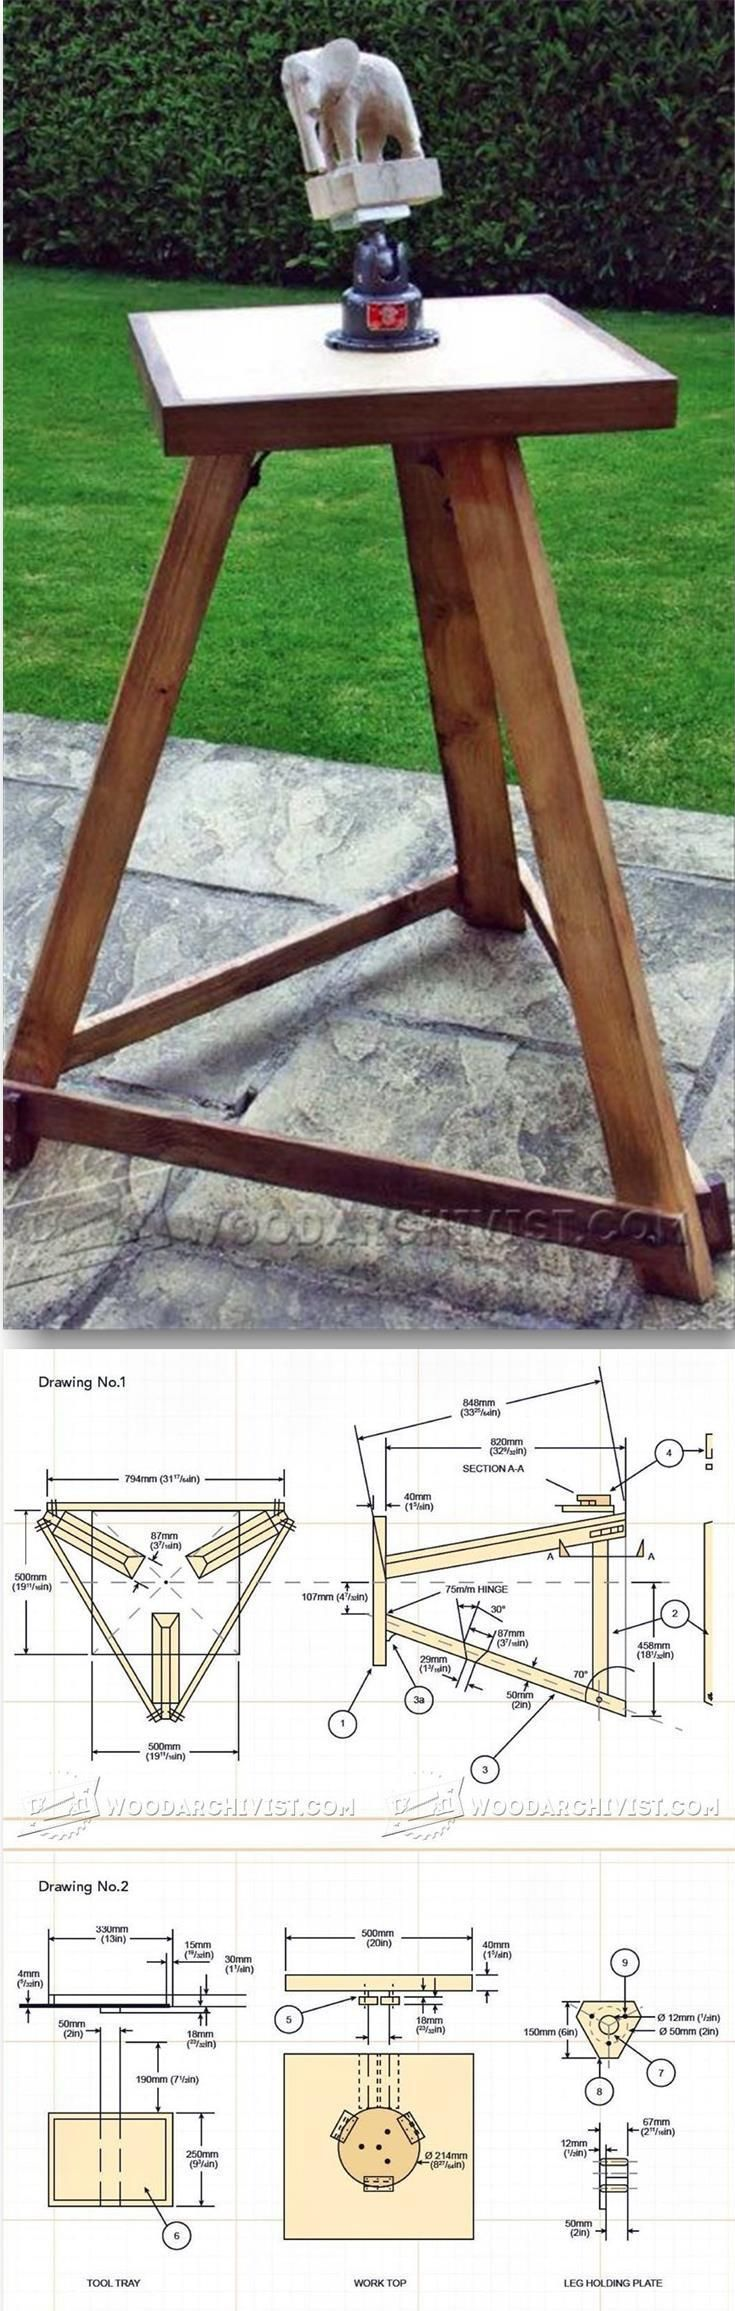 170 Best Ideas About Wood Carving On Pinterest Carving